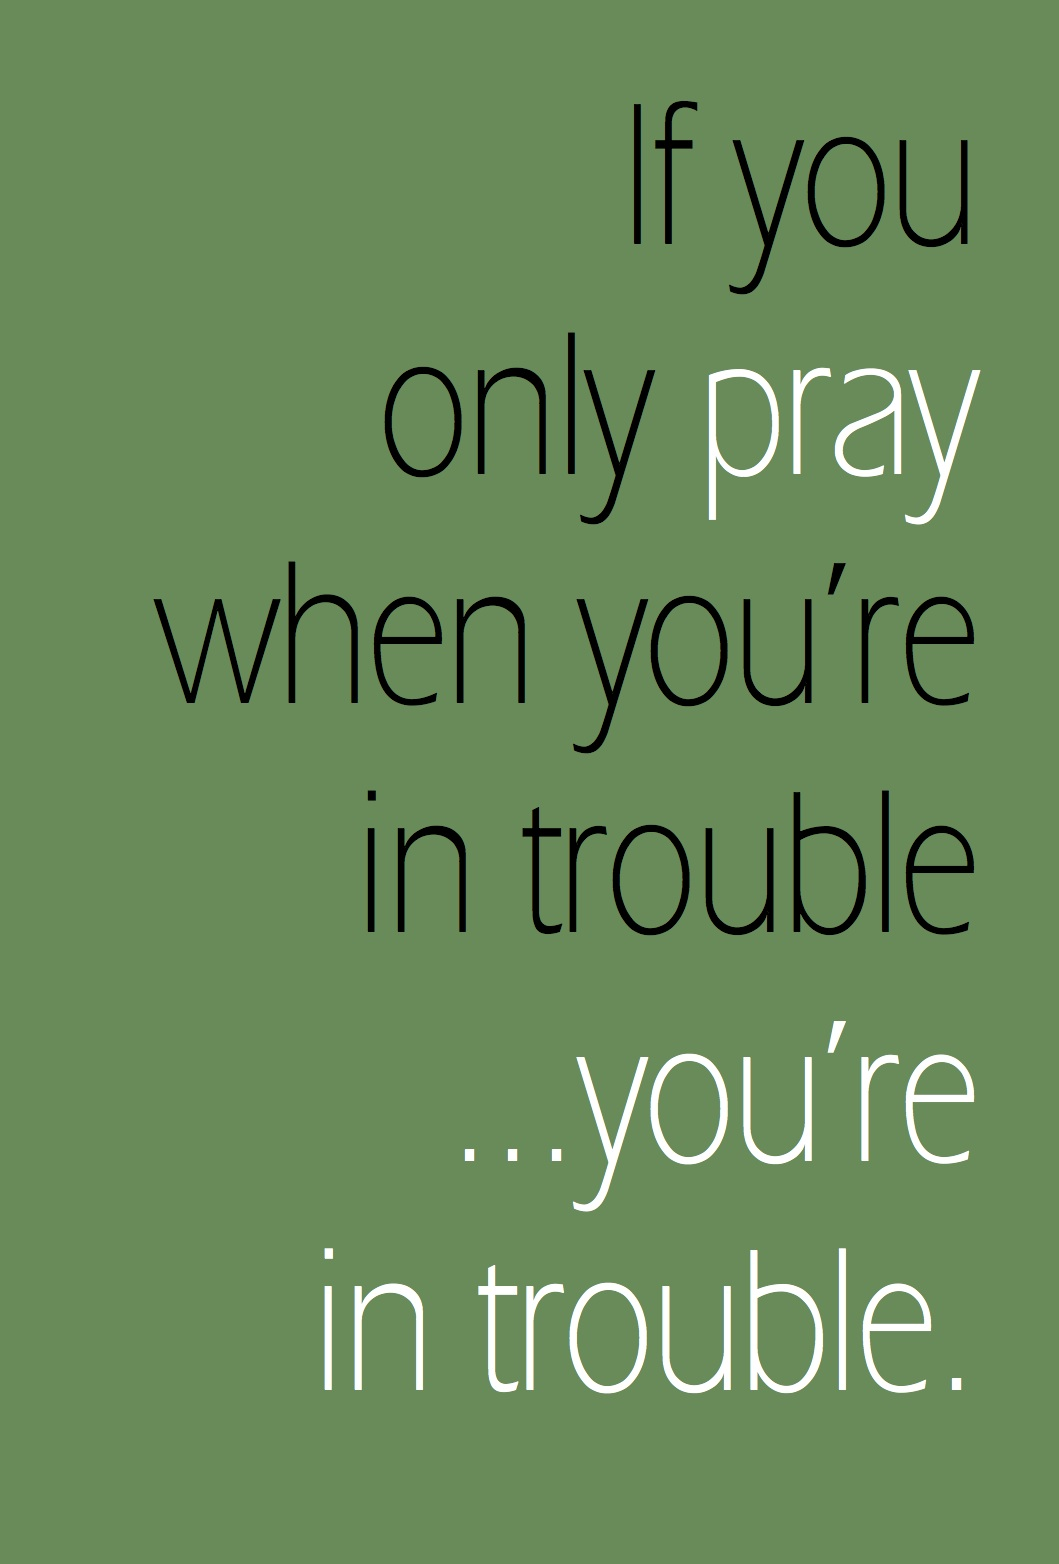 Quotes On Prayer Interesting 17 Best Images About Faith On Pinterest  Buddhism Buddhists And .